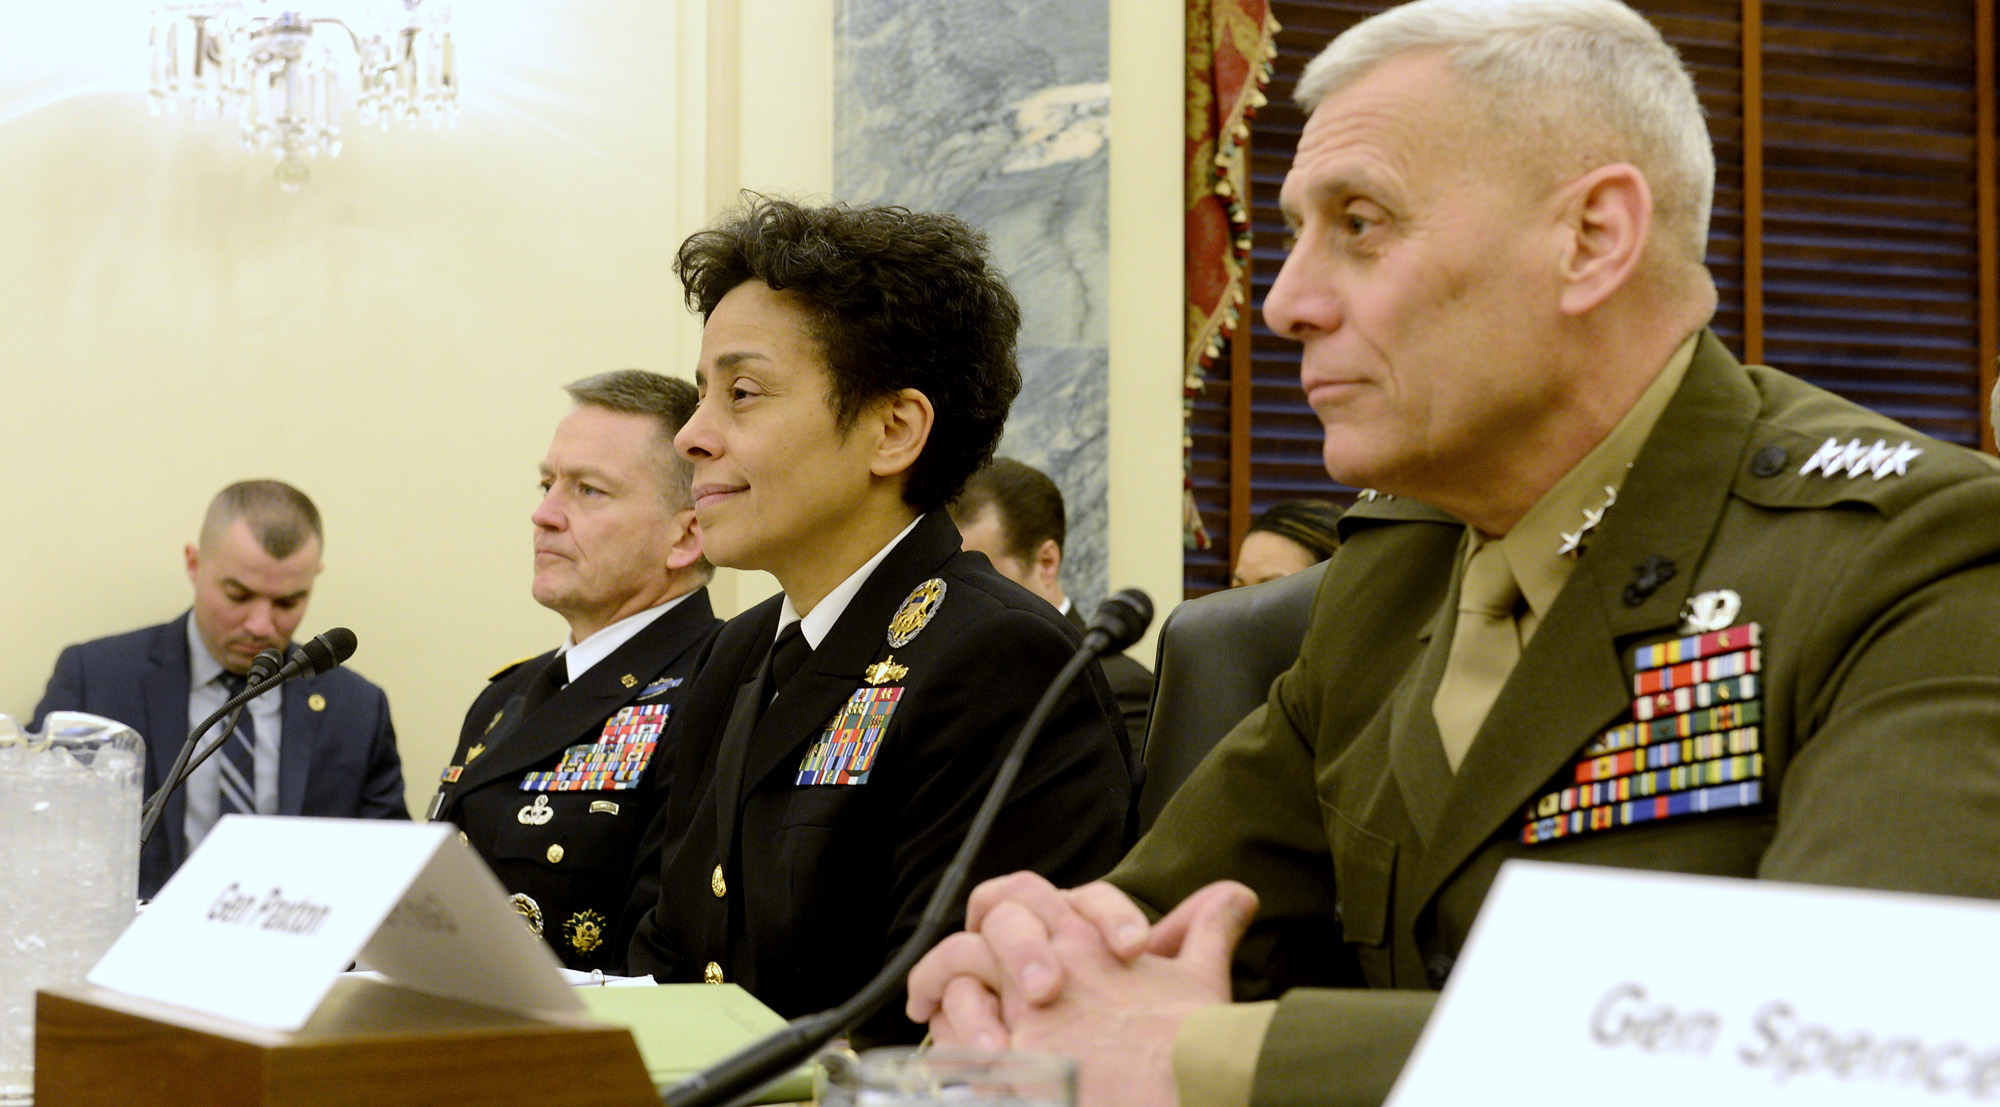 Vice Chief of Naval Operations Adm. Michelle Howard and Assistant Commandant of the Marine Corps Gen. John Paxton testified at the Senate Armed Services Committee on Wednesday, March 25 and the House Armed Services Committee on Thursday, March 26 to discuss the readiness of the force. US Navy photo.